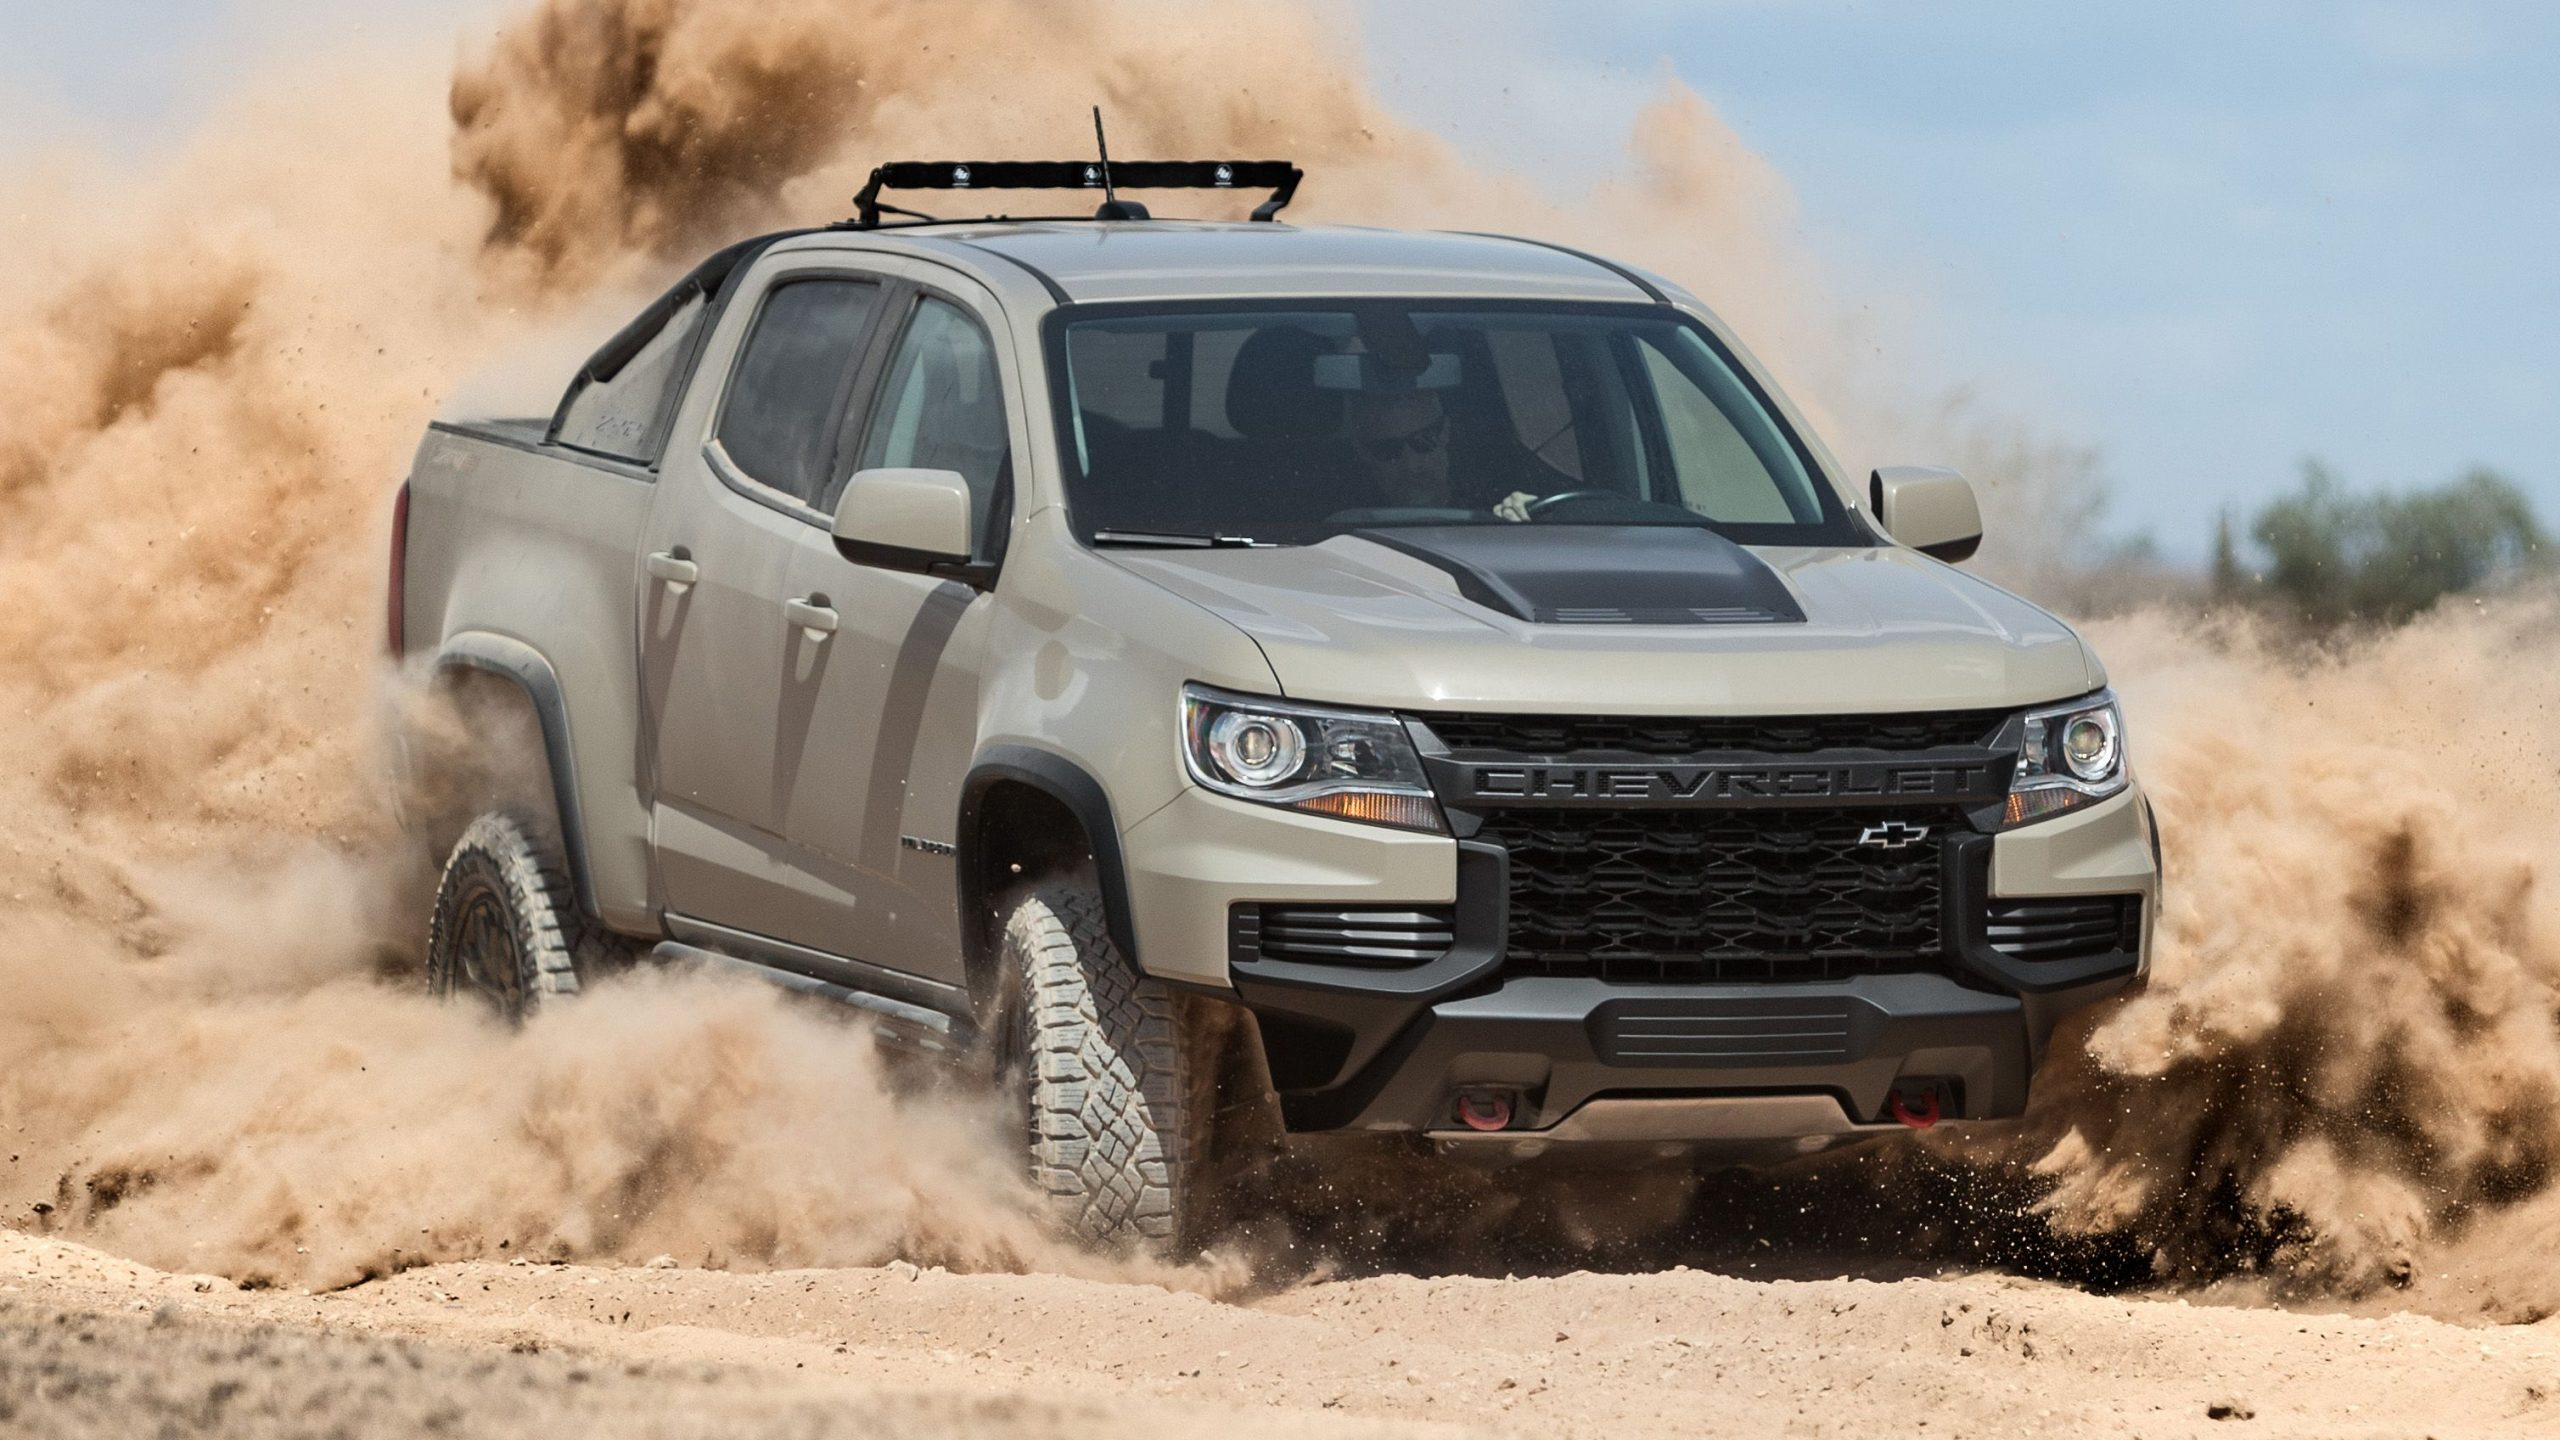 2021 Chevrolet Colorado Zr2 Unveiled With Updated Design 2021 Chevy Colorado Crew Cab Running Boards, Length, Dimensions